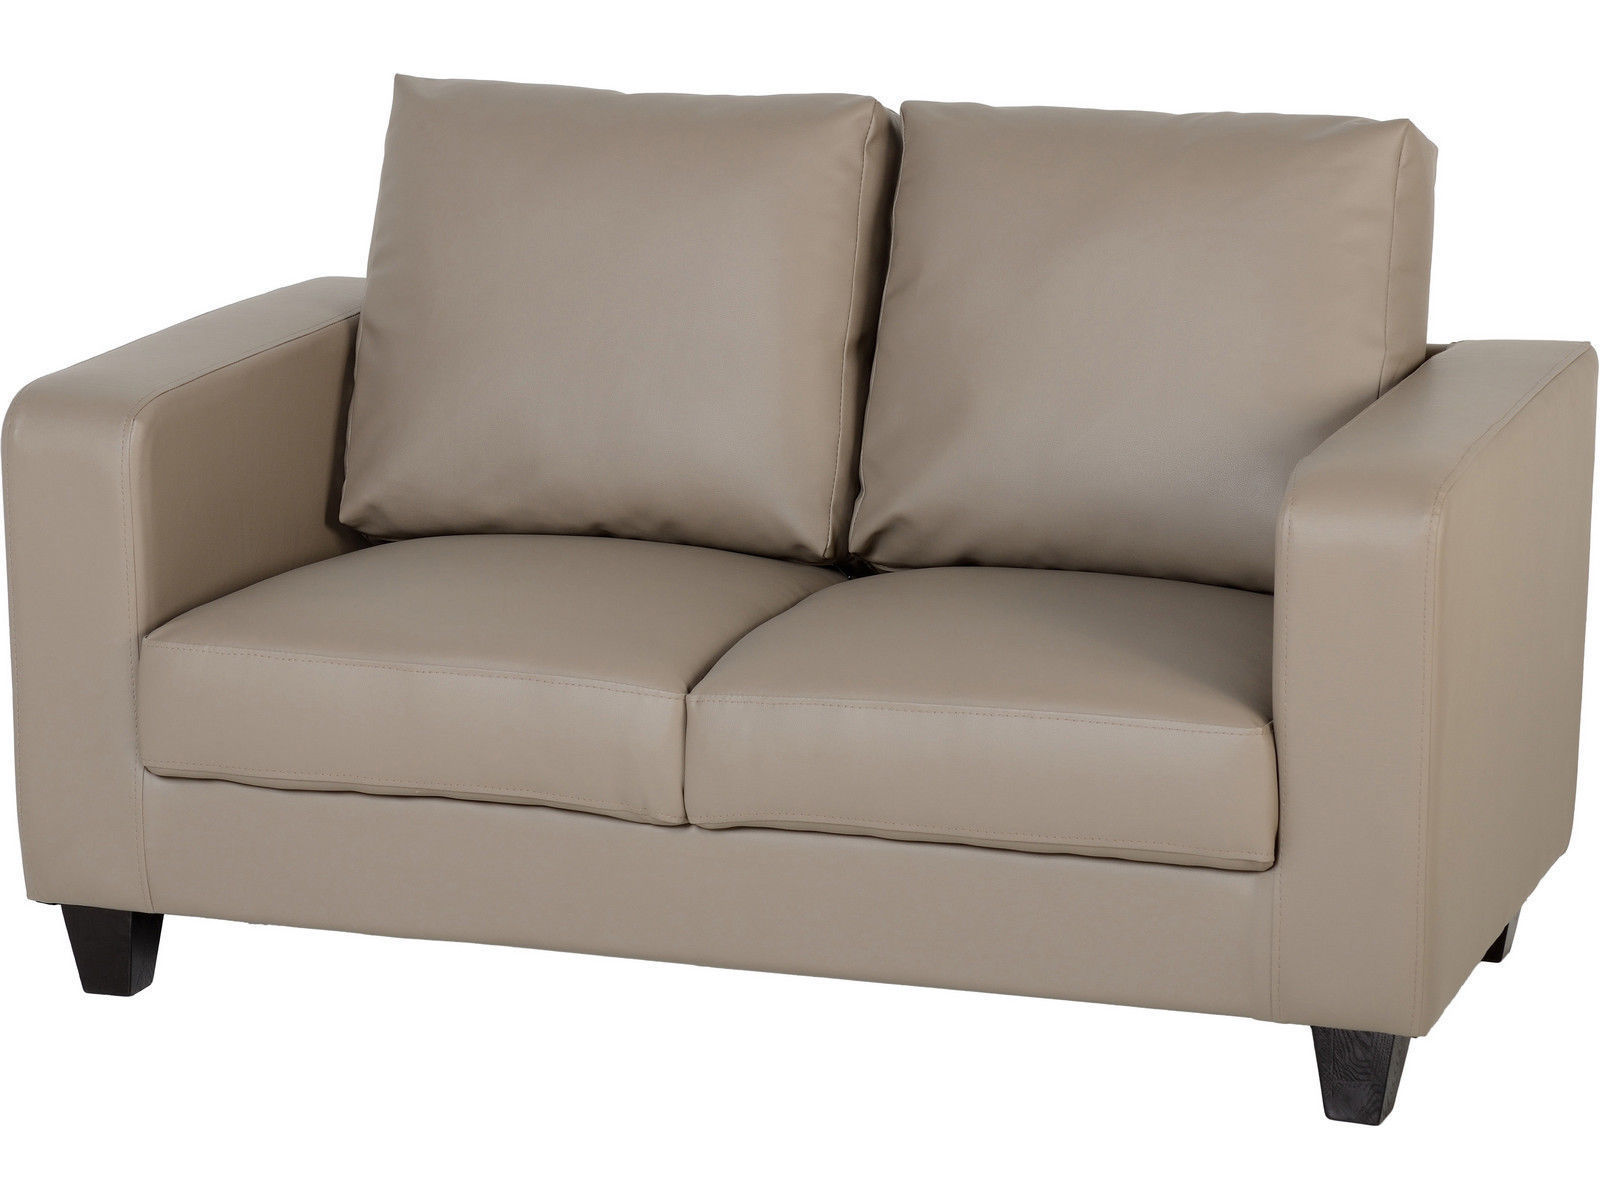 sofa box ashley alenya charcoal review seconique tempo 2 seater in a taupe faux